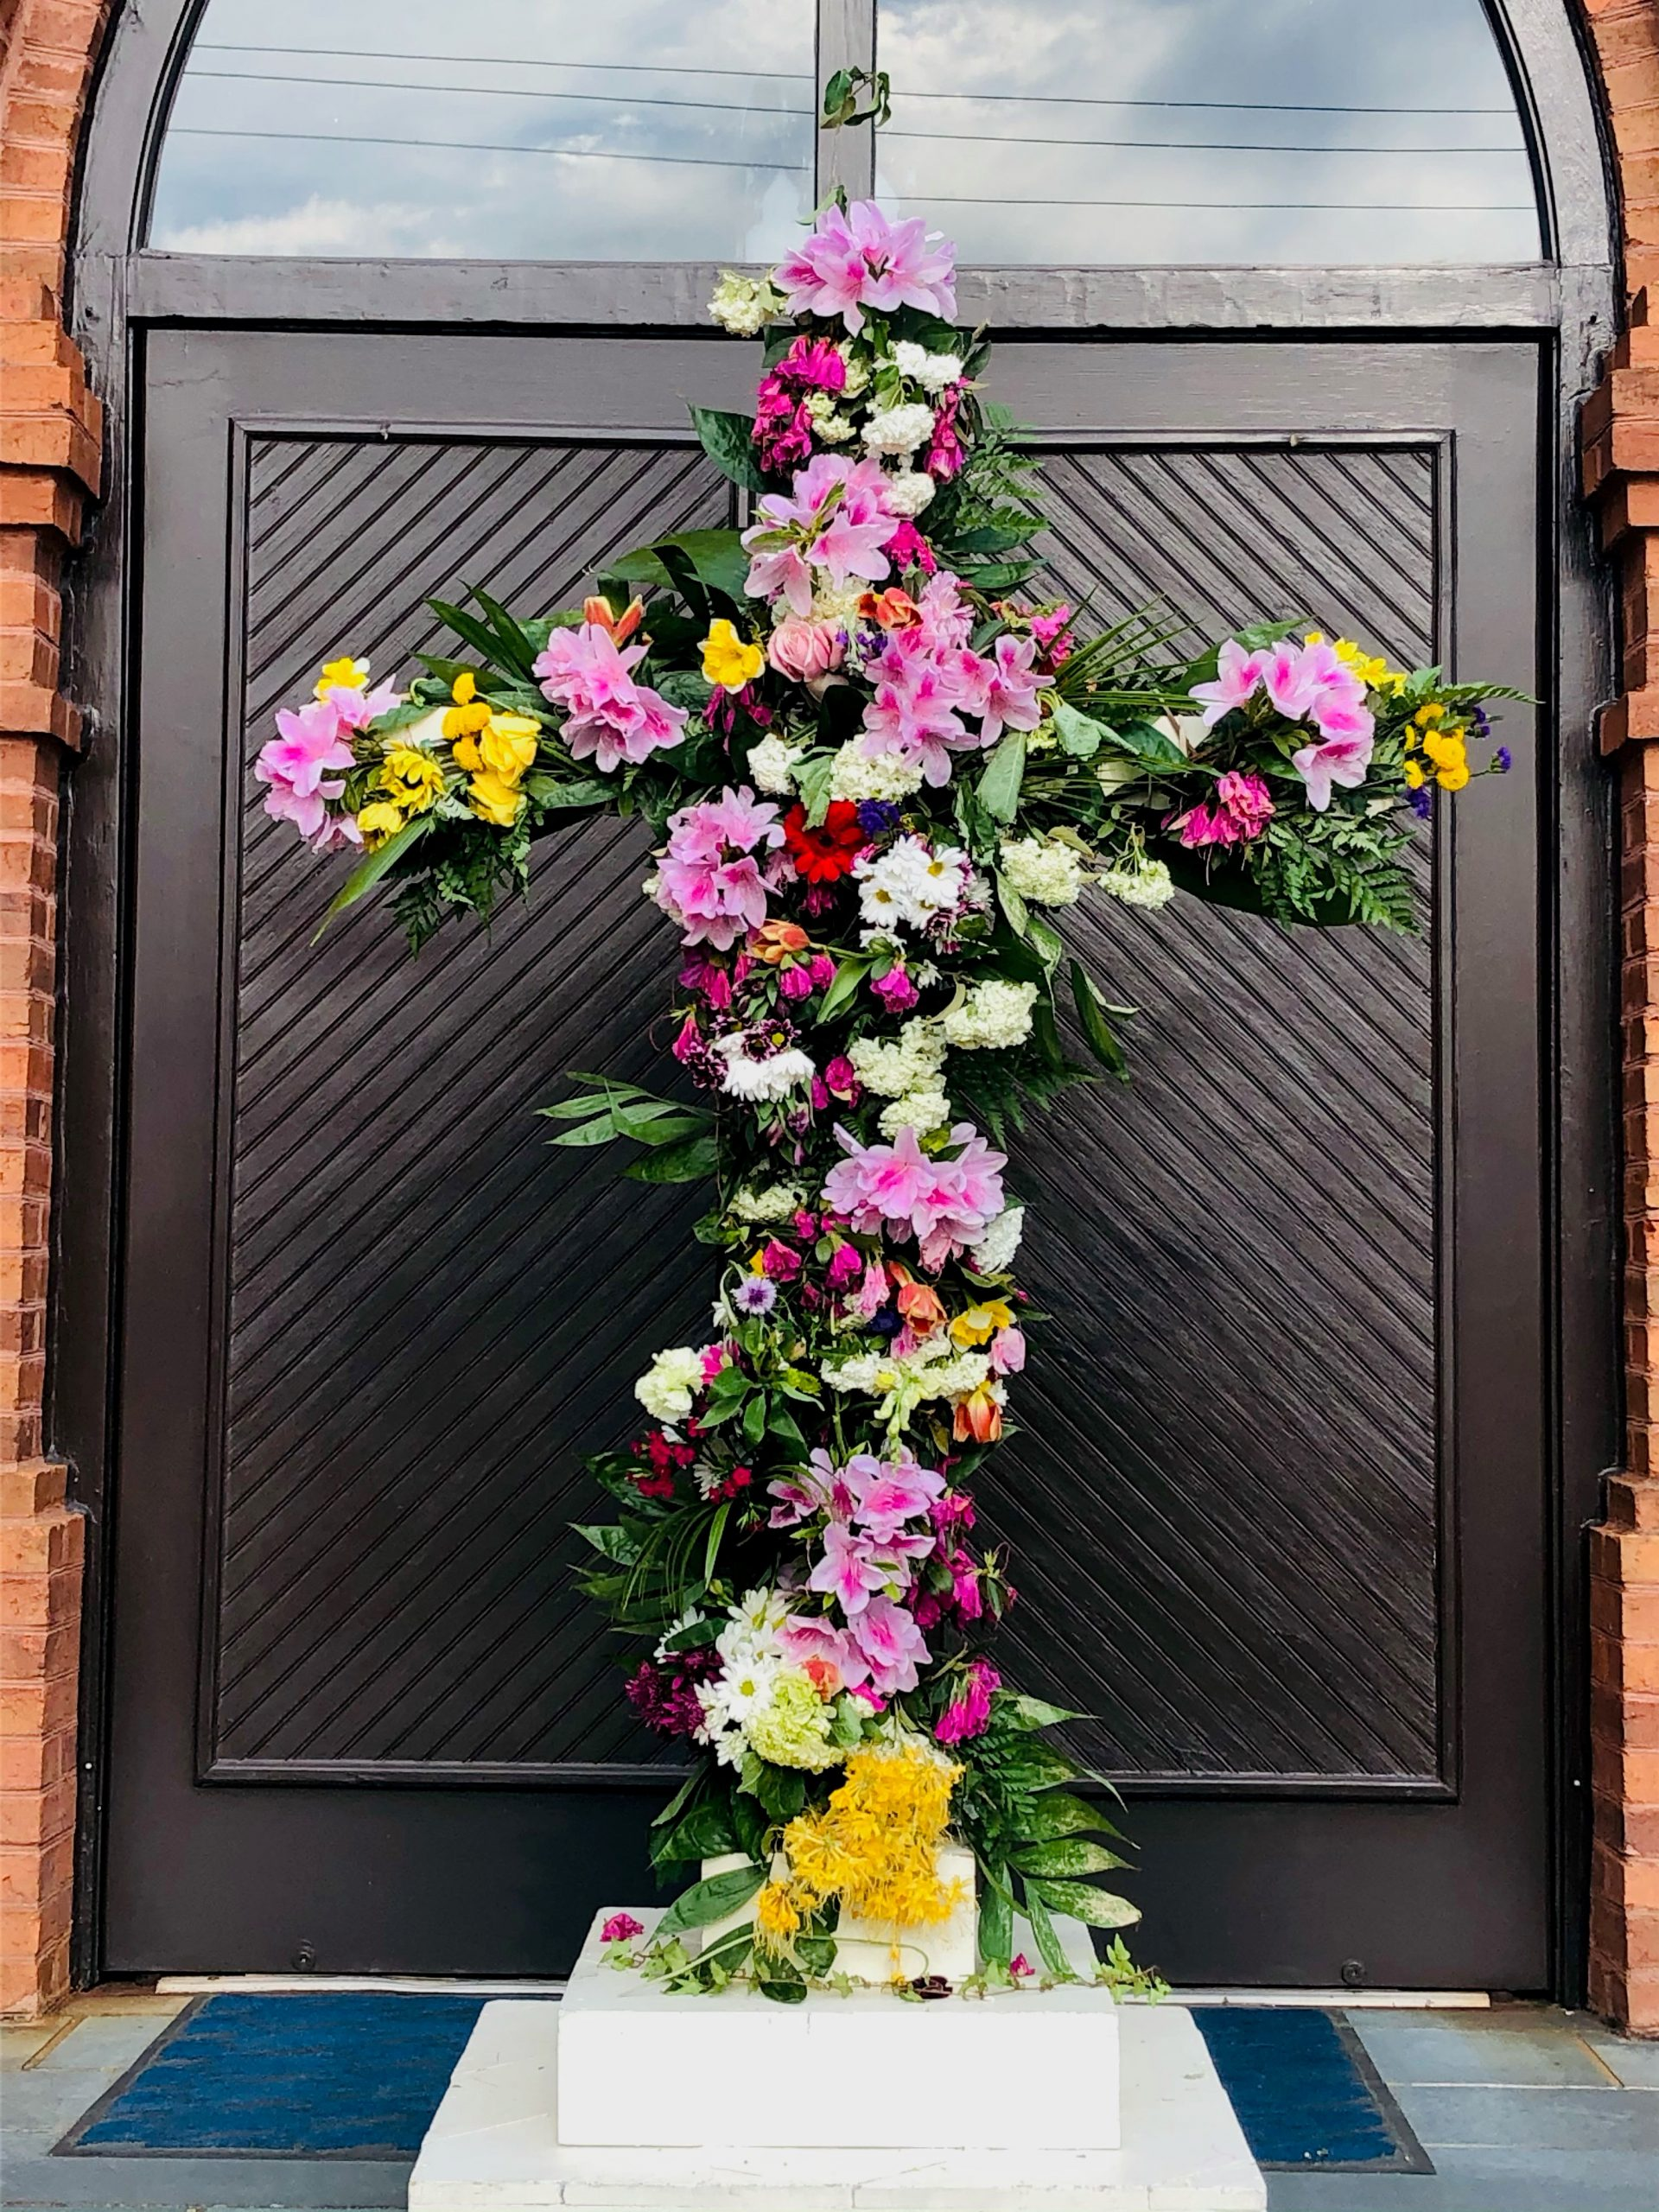 Flowering the Cross - Easter 2021